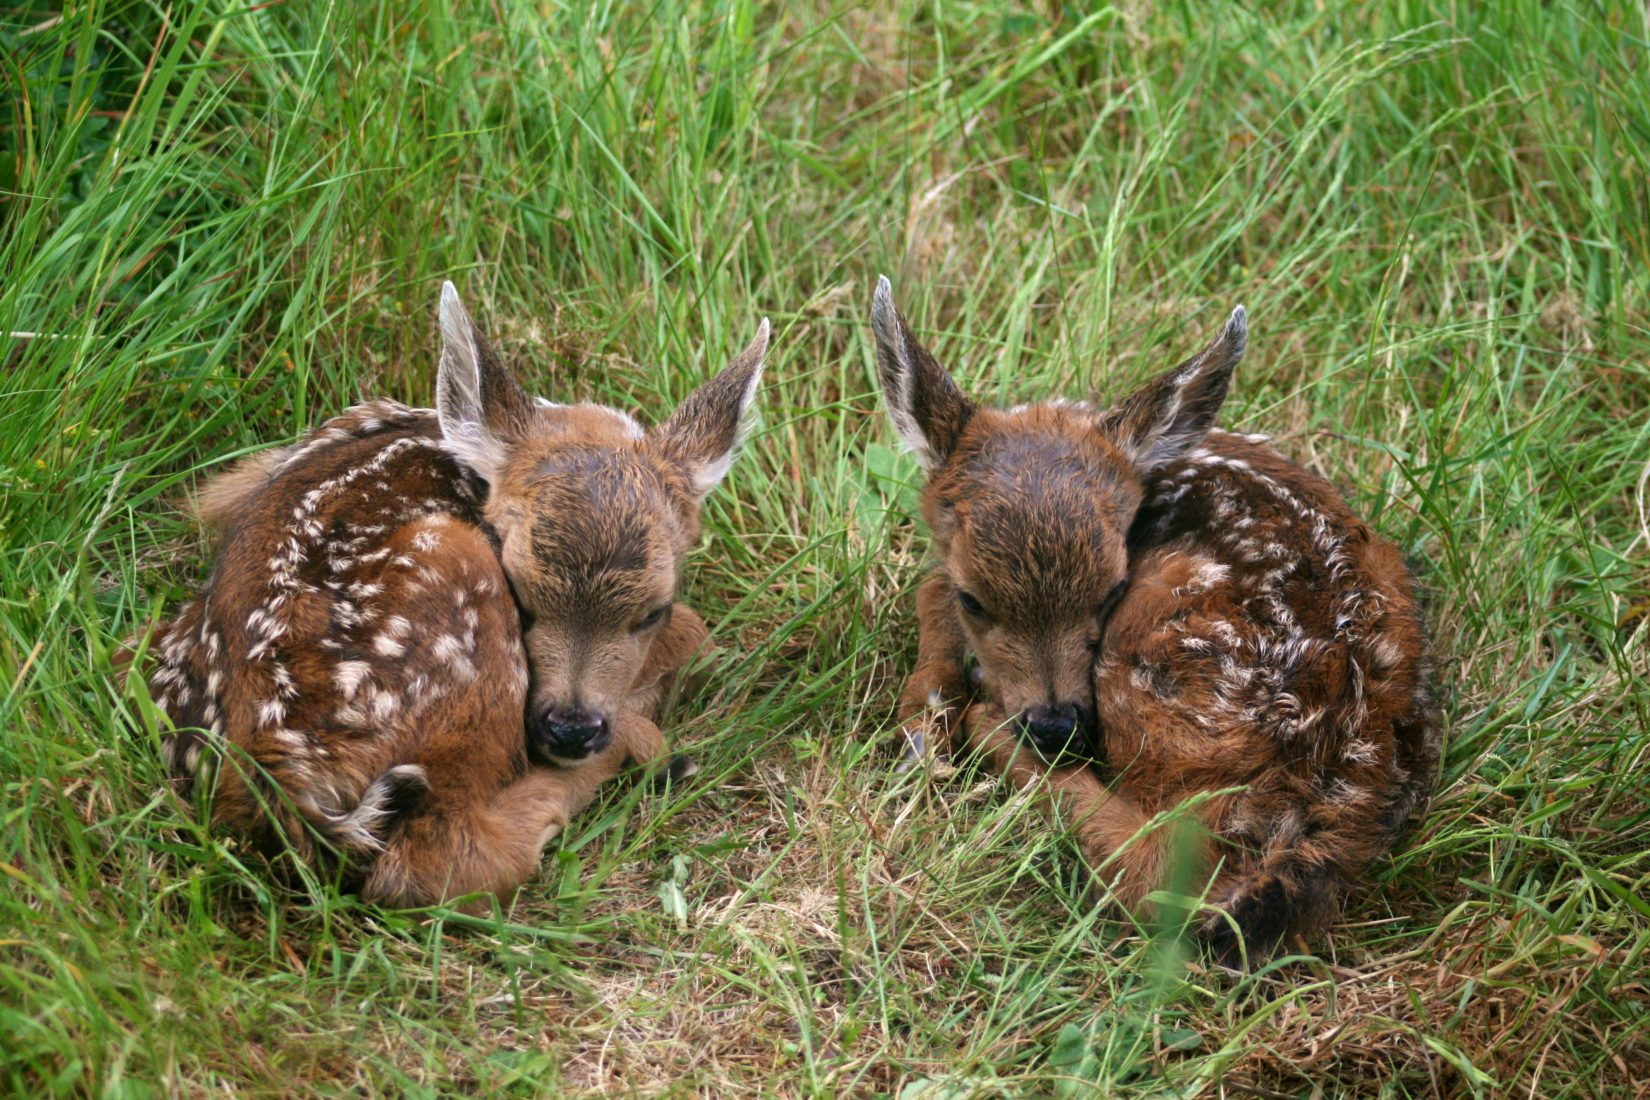 Two deer fawns laying in grass